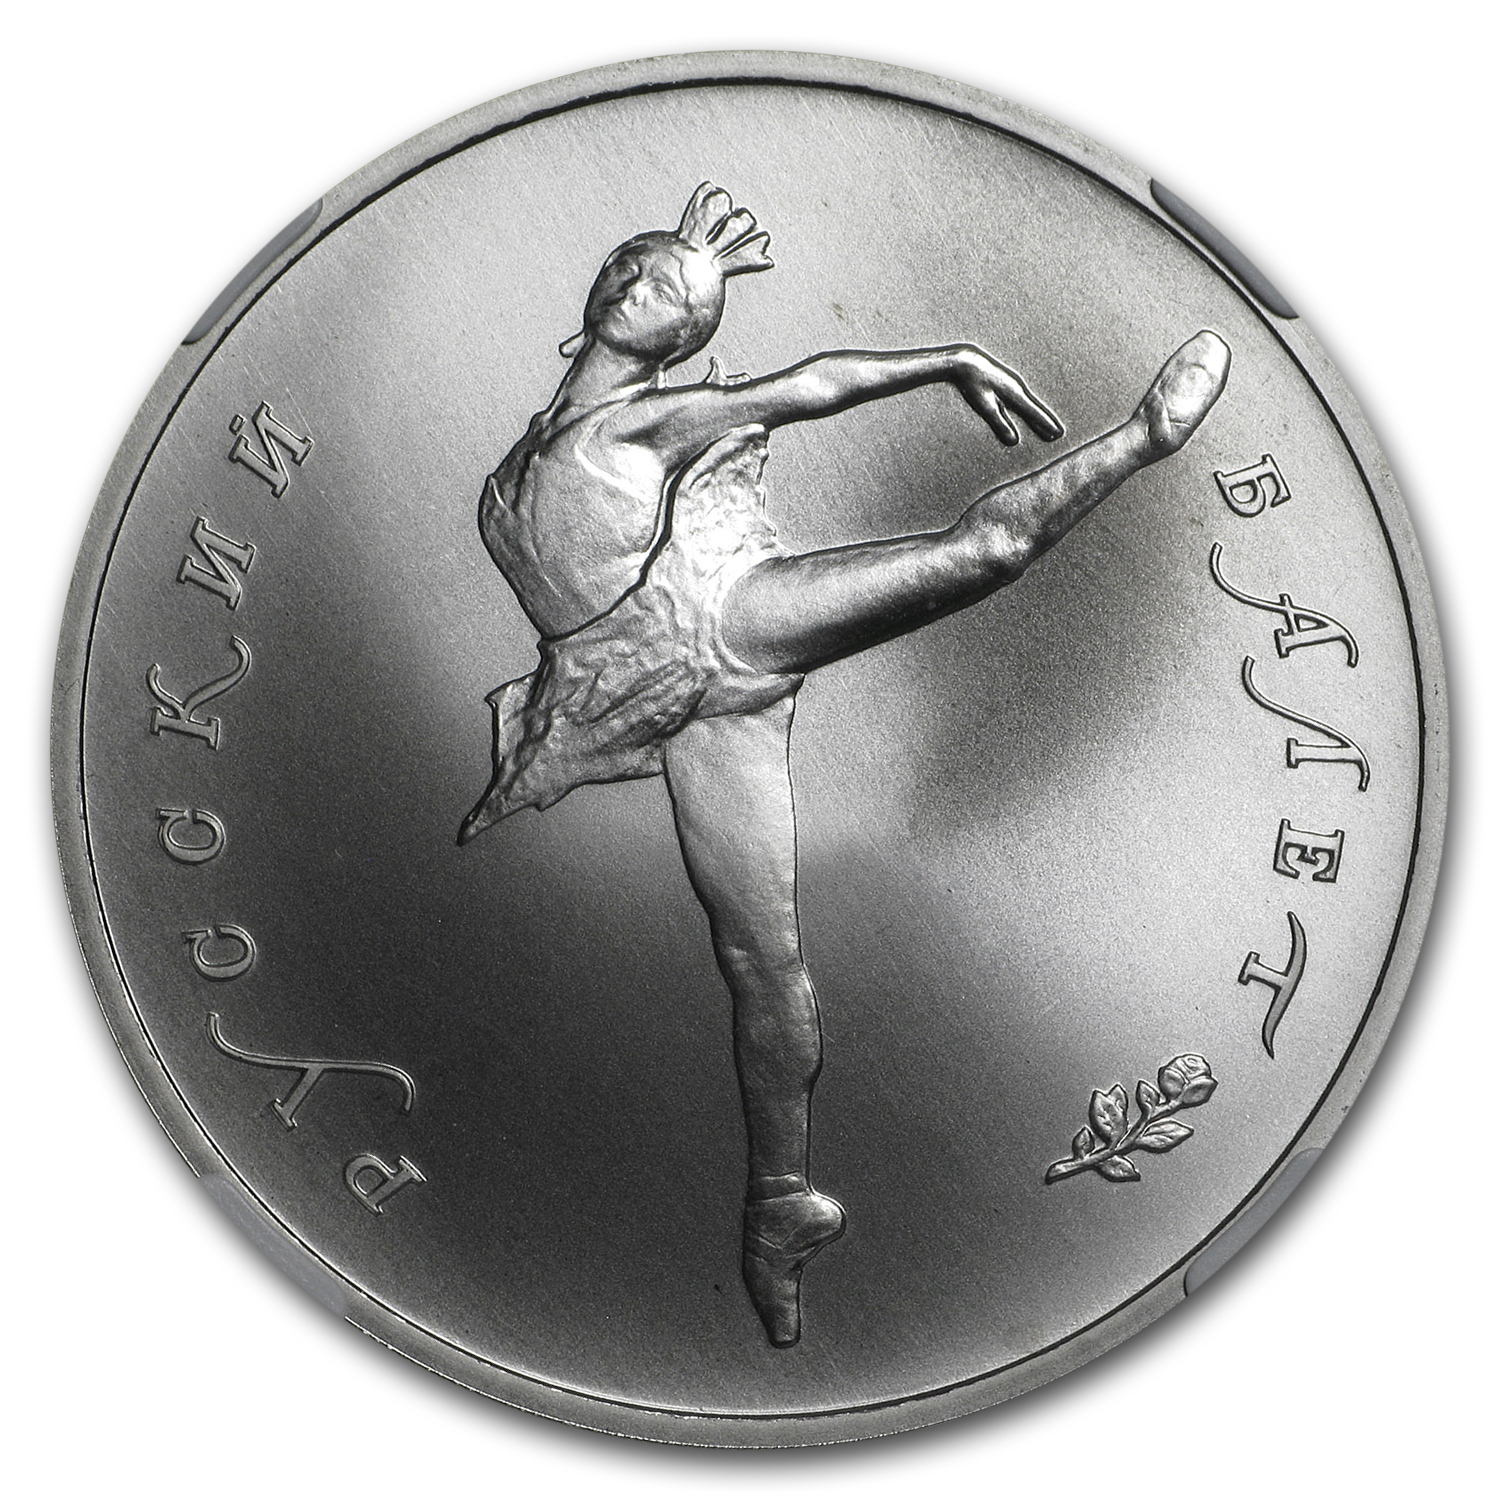 1990 1 oz Palladium Russian Ballerina MS-69 NGC